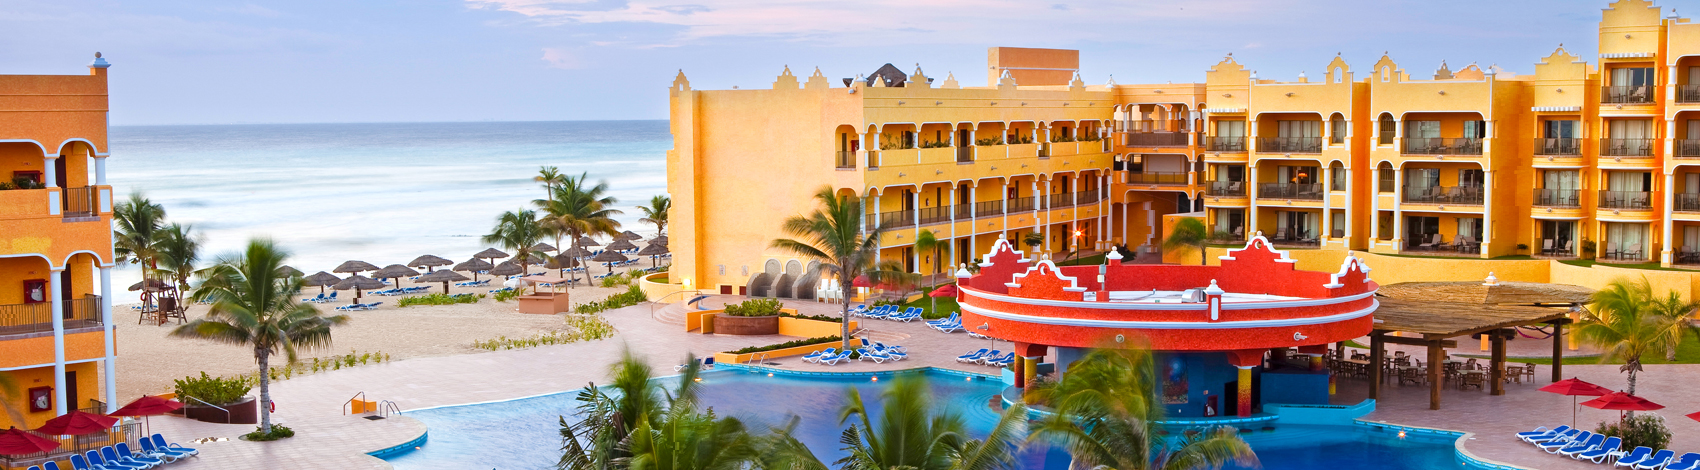 The Royal Haciendas is an exceptional resort hideaway for an unforgettable all-inclusive vacation in paradise